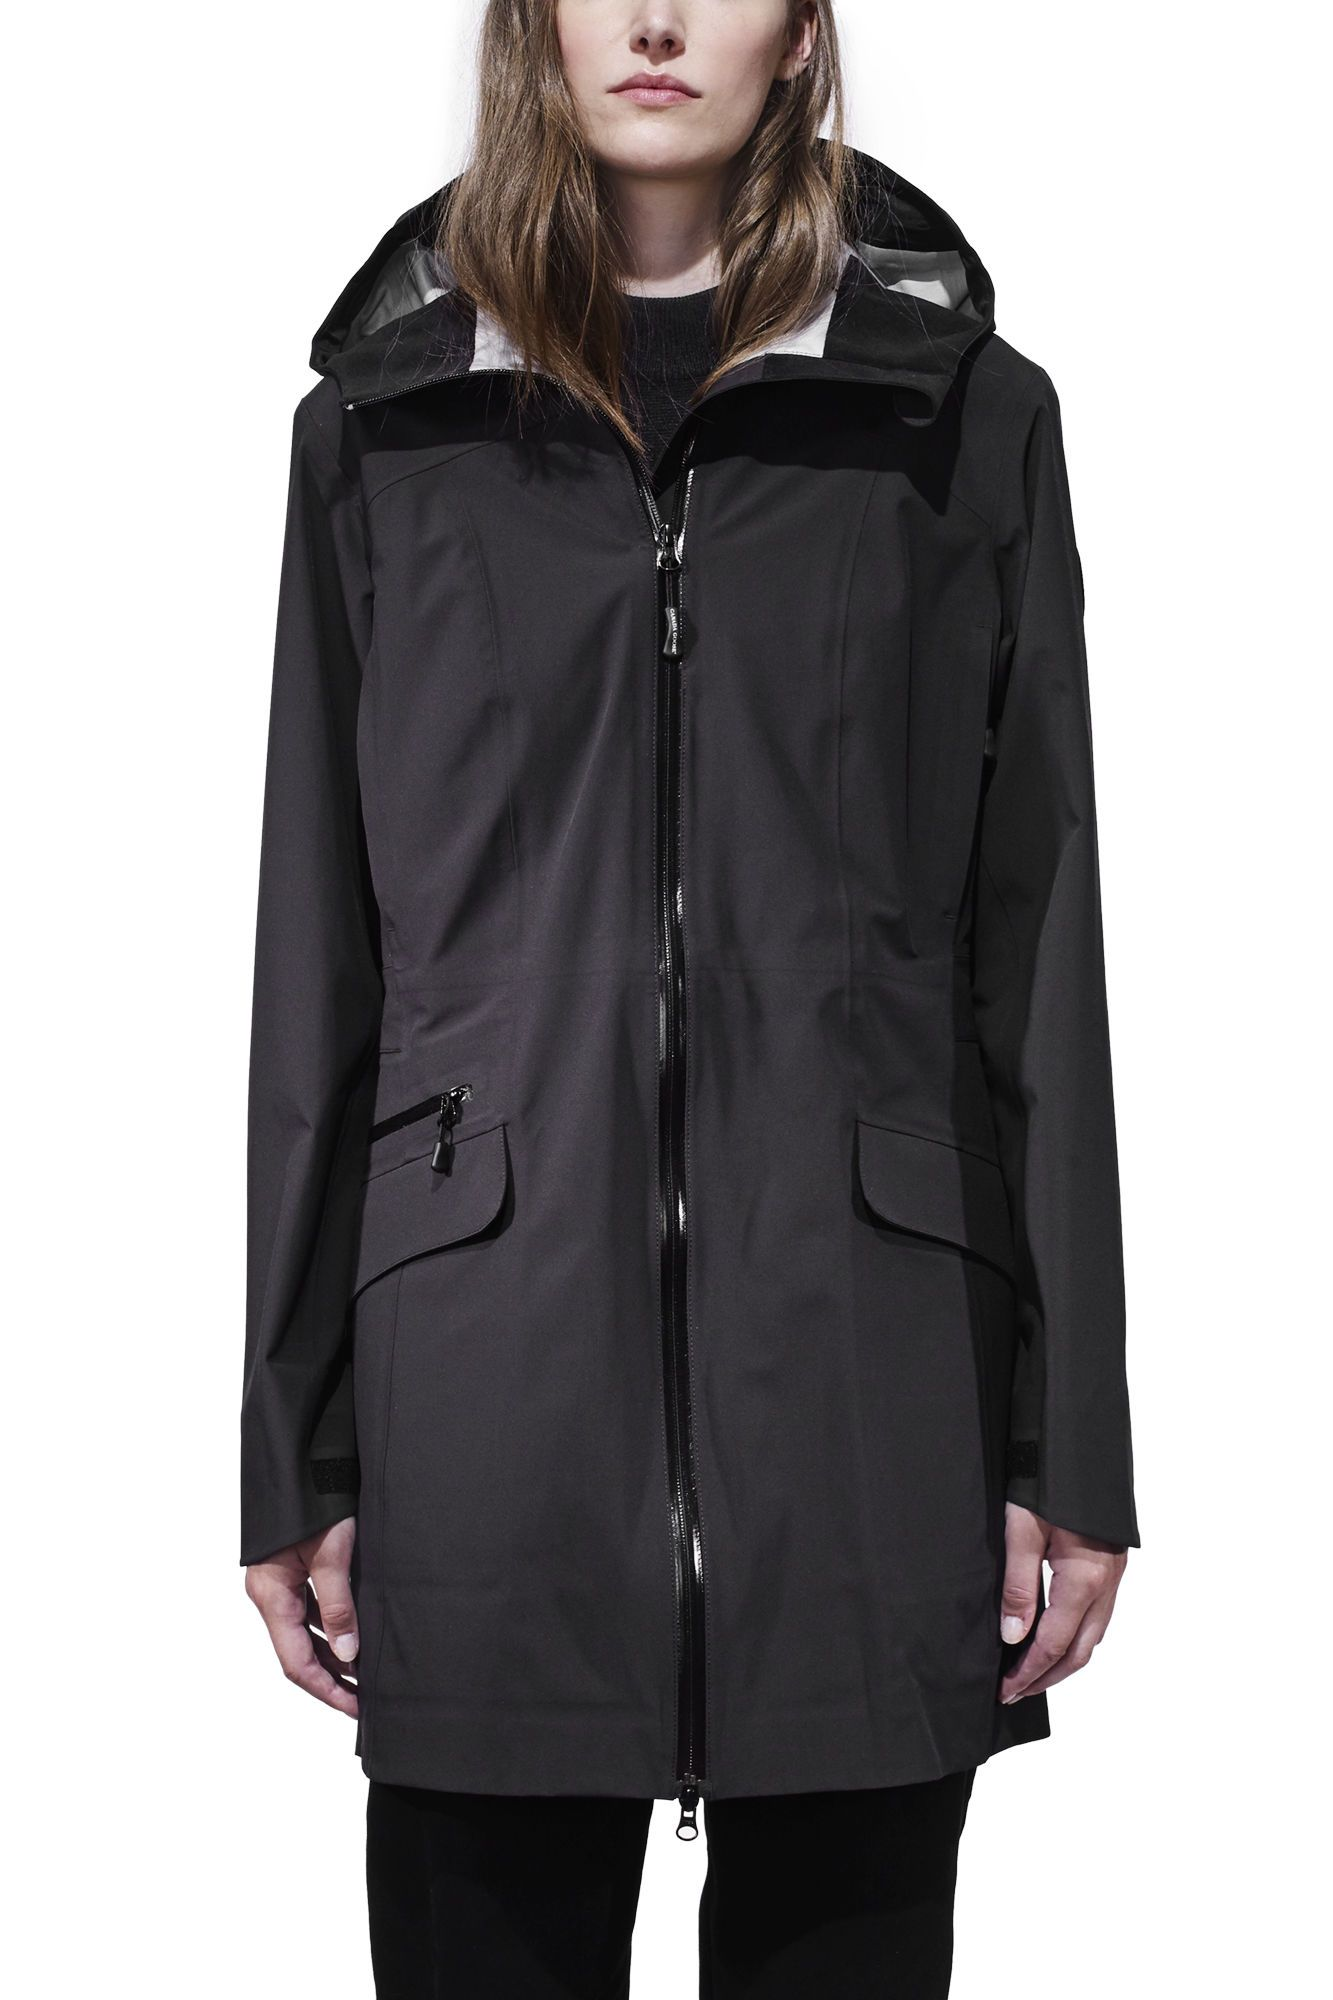 29b2aa010 Coastal Shell Black Label | Canada Goose | Clothes to buy when they ...